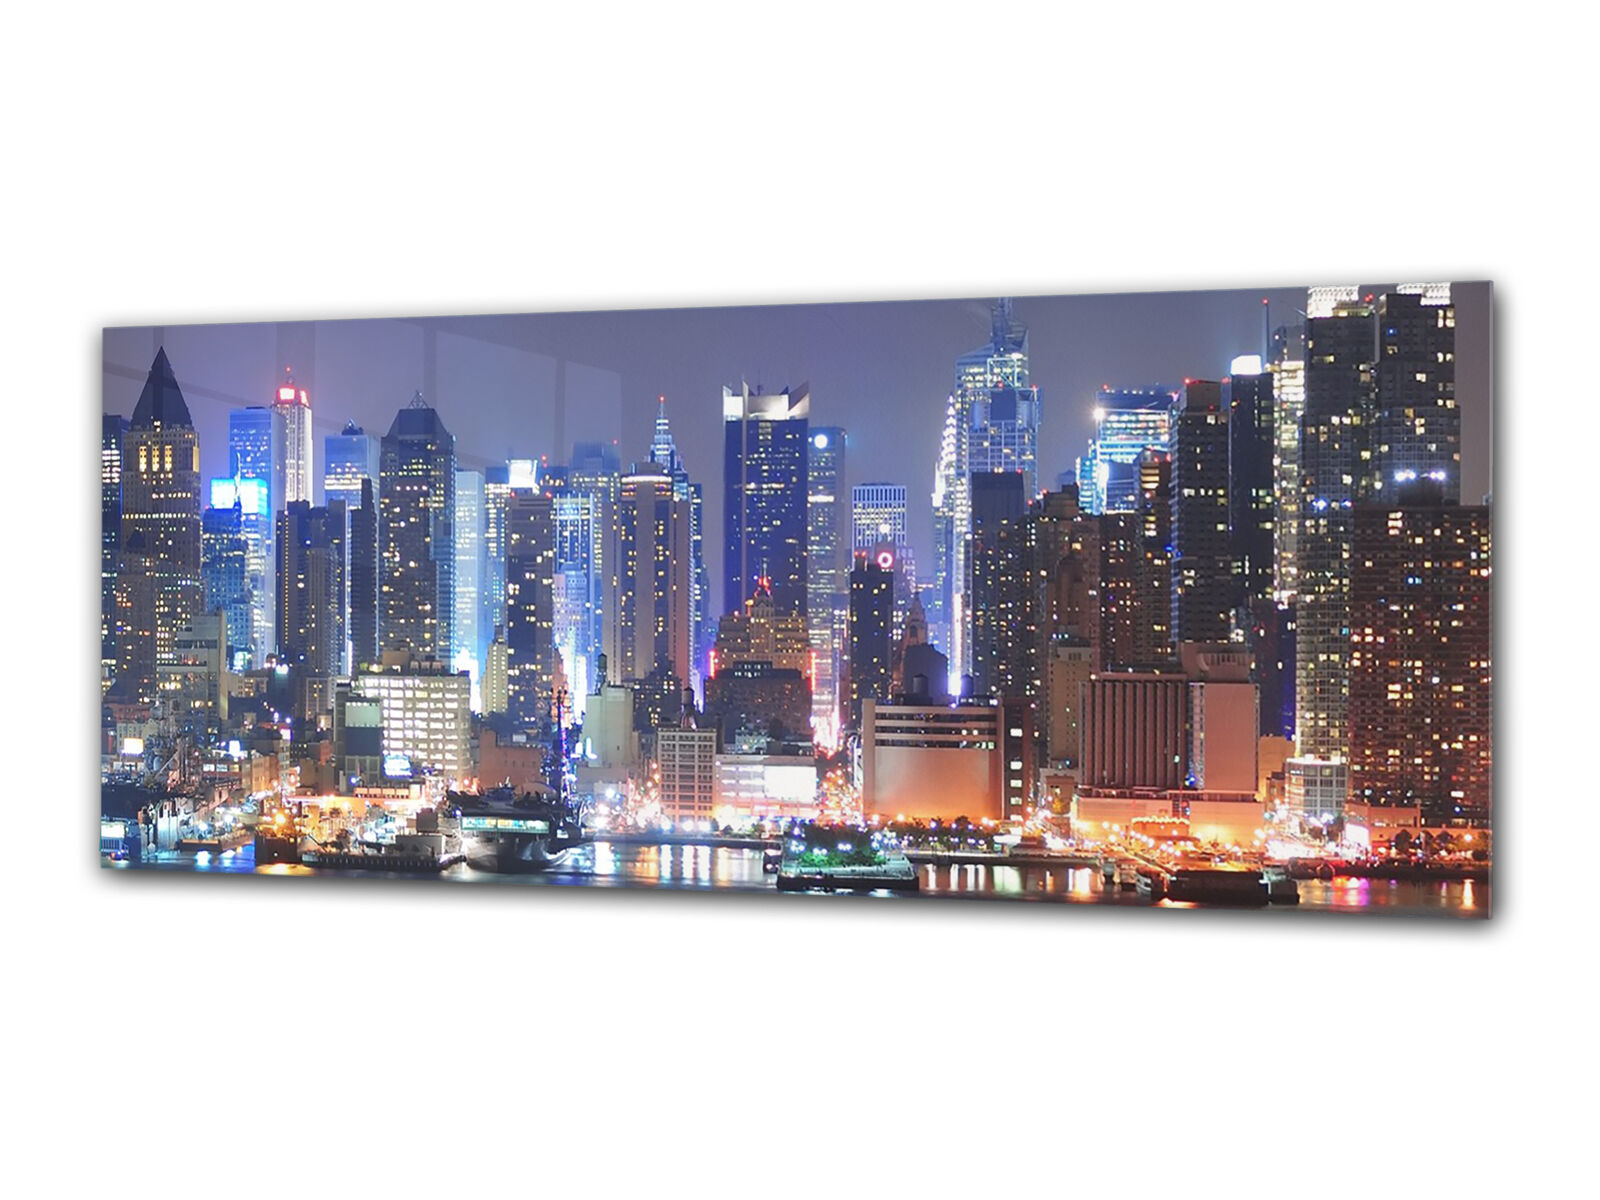 Glass Print Wall Art 112x45 cm Image on Glass Decorative Wall Picture 43252911